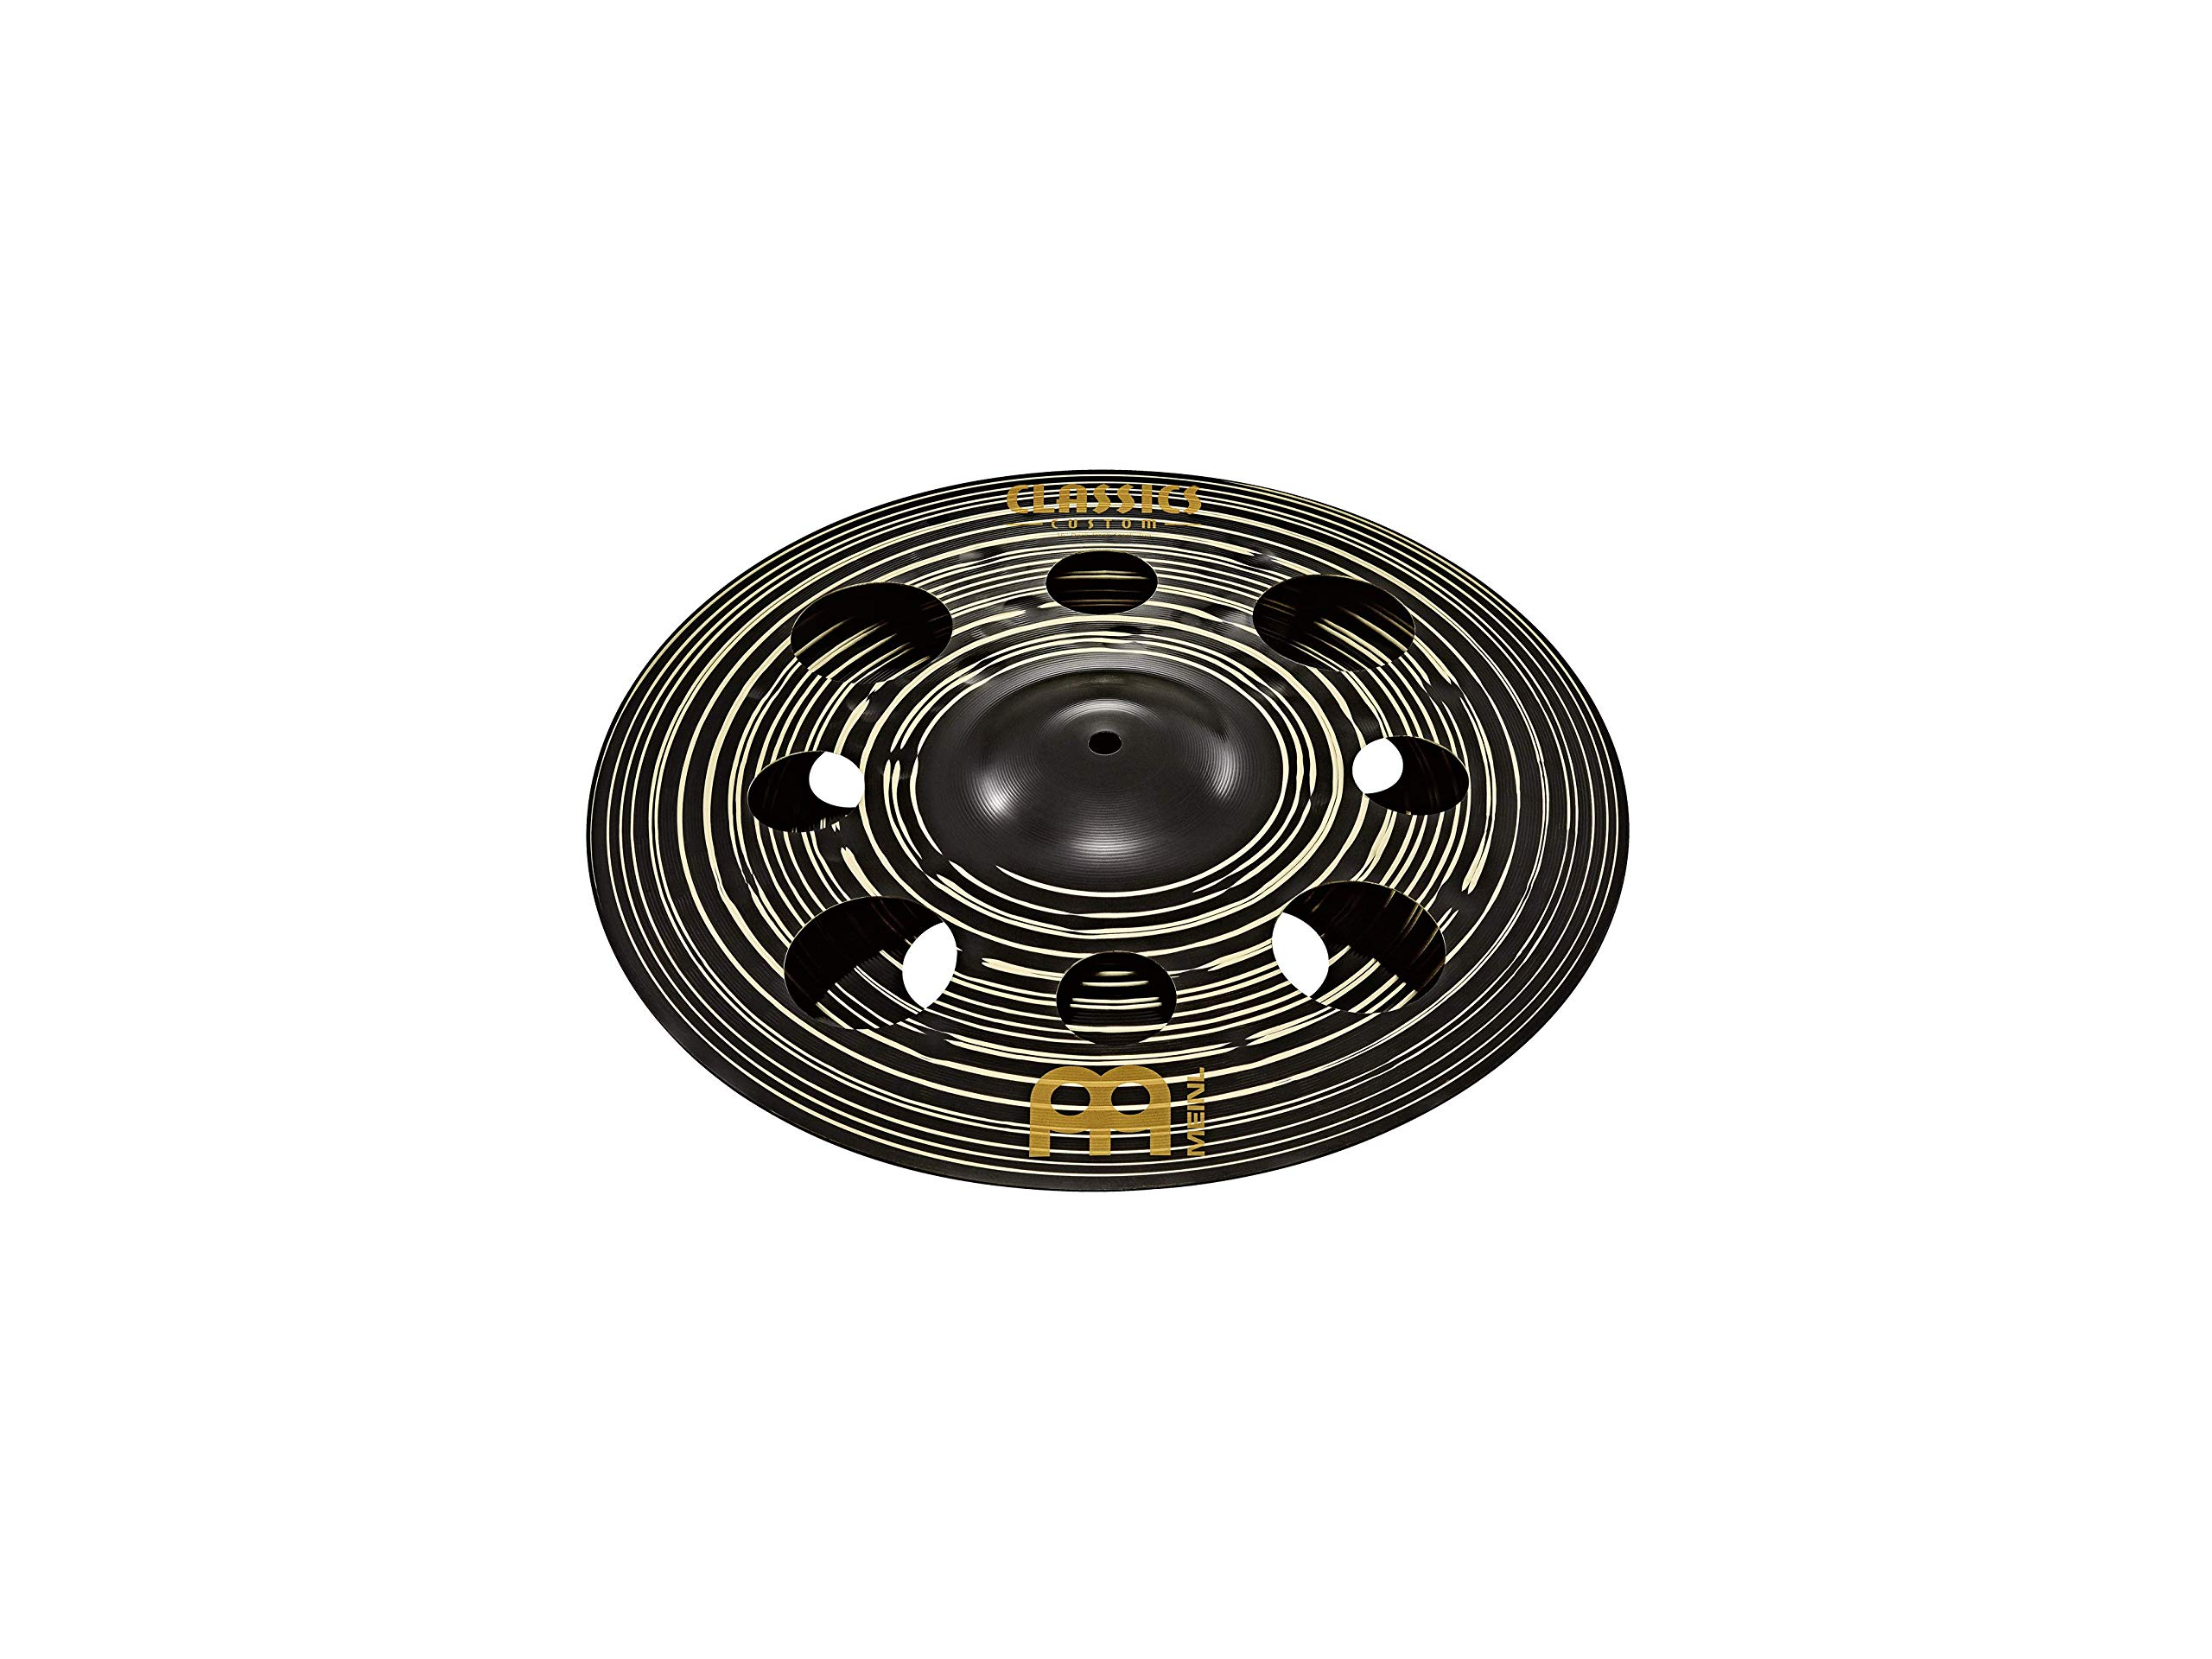 Meinl Cymbals 12'' Trash Stack Cymbal Pair with Holes - Classics Custom Dark - MADE IN GERMANY, 2-YEAR WARRANTY (CC-12DASTK) by Meinl Cymbals